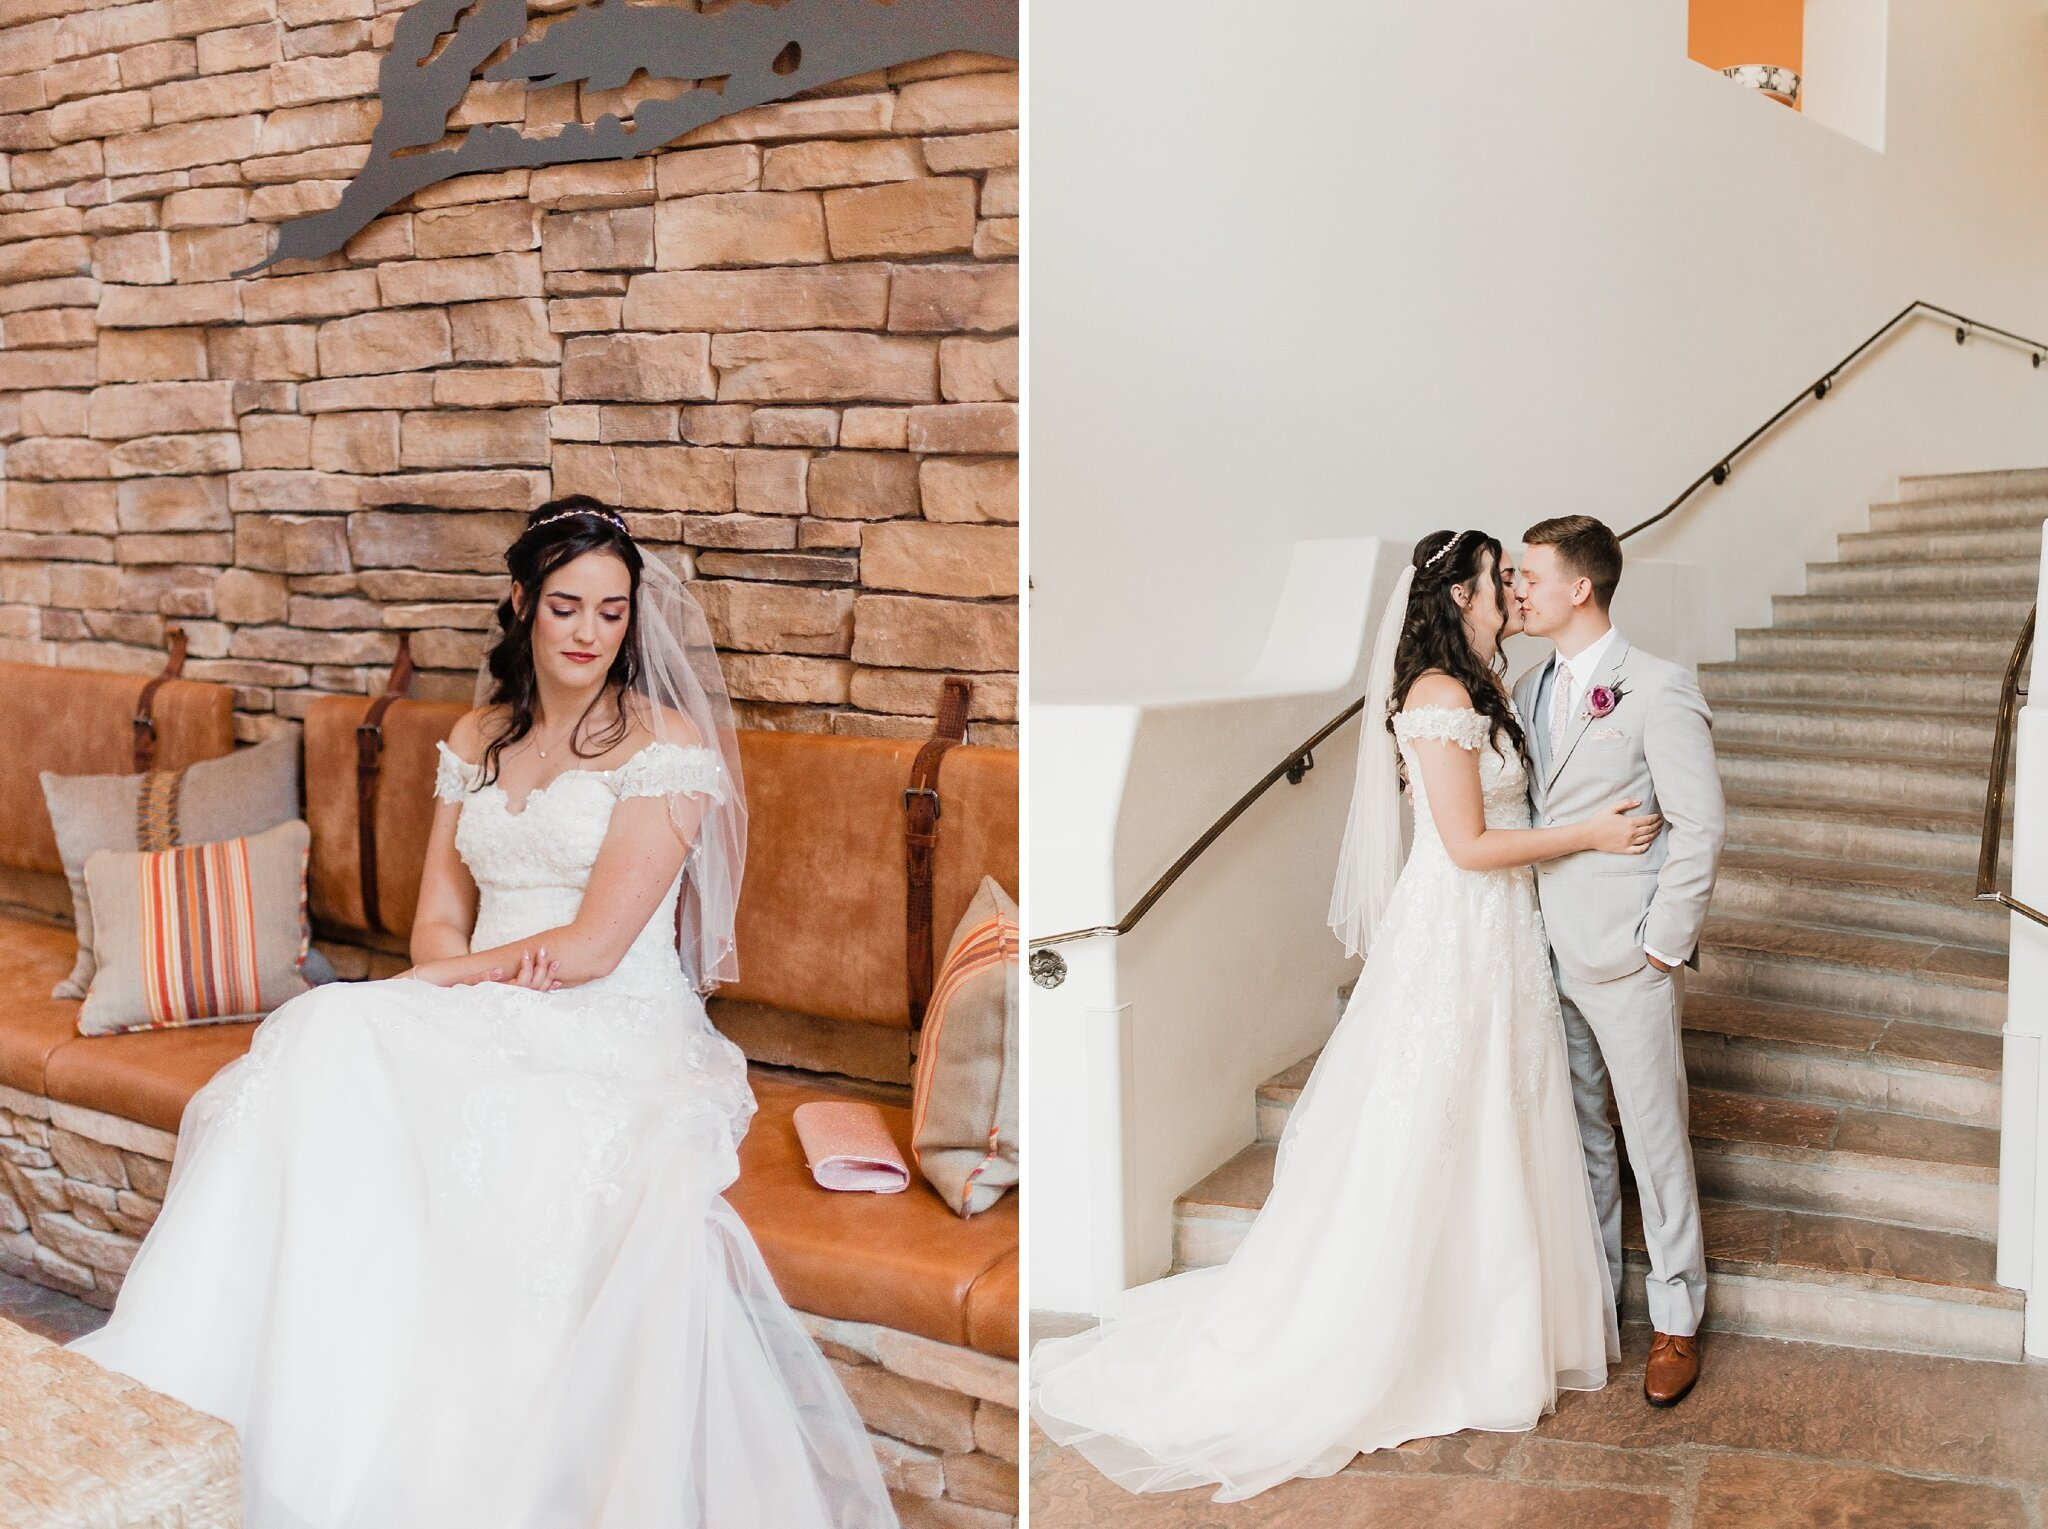 Alicia+lucia+photography+-+albuquerque+wedding+photographer+-+santa+fe+wedding+photography+-+new+mexico+wedding+photographer+-+new+mexico+wedding+-+wedding+-+bridal+gown+-+wedding+gown+-+ballgown+wedding+gown+-+ballgown+bridal+gown_0057.jpg